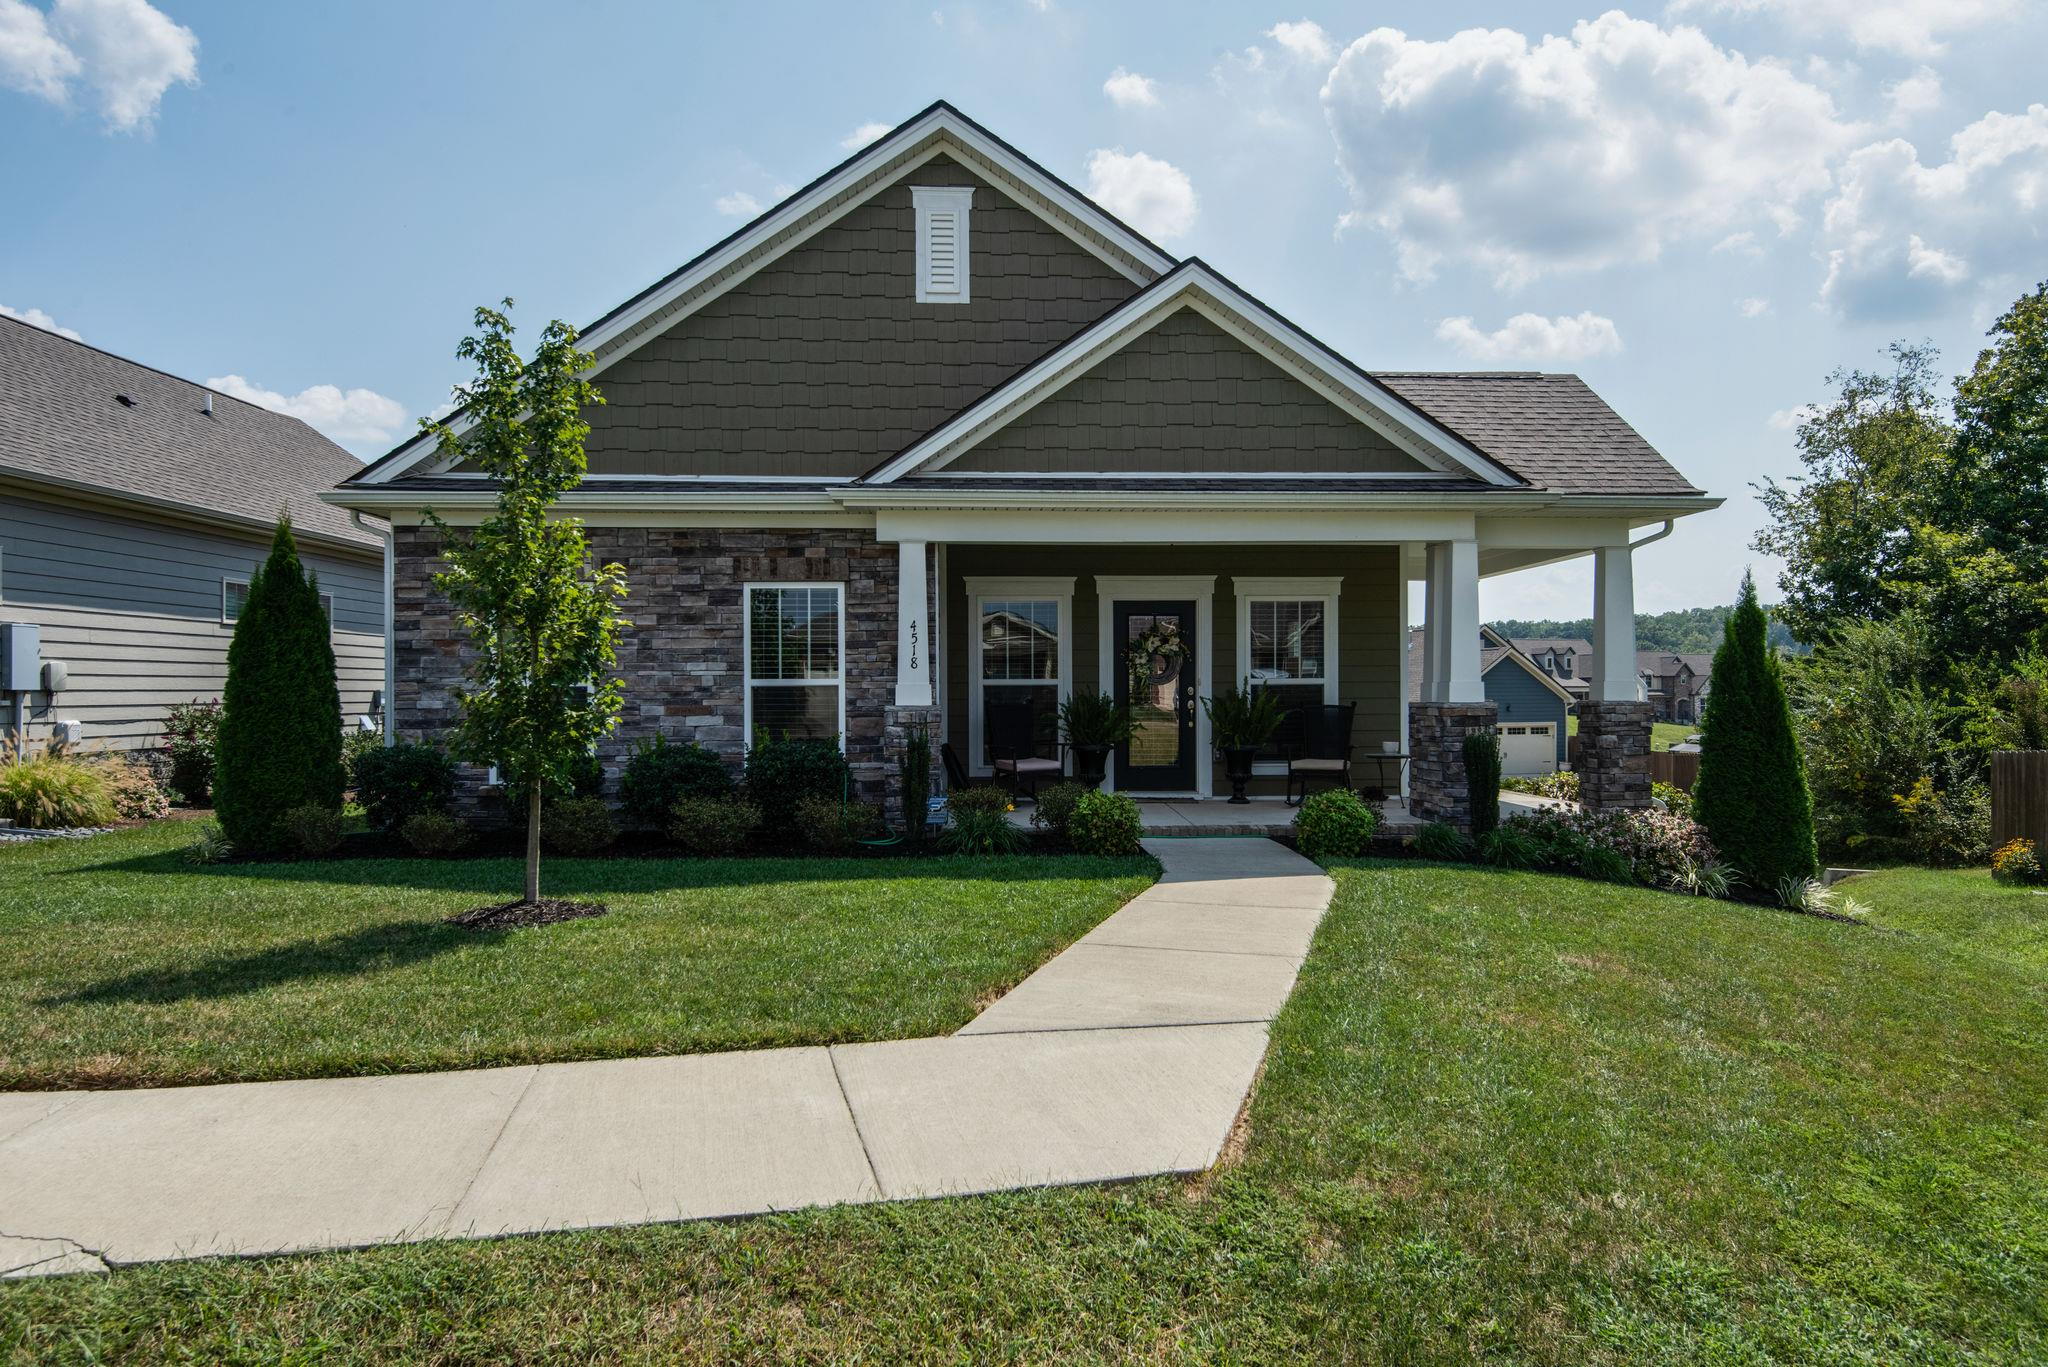 4518 Dumfries Aly, Nolensville in Davidson County County, TN 37135 Home for Sale